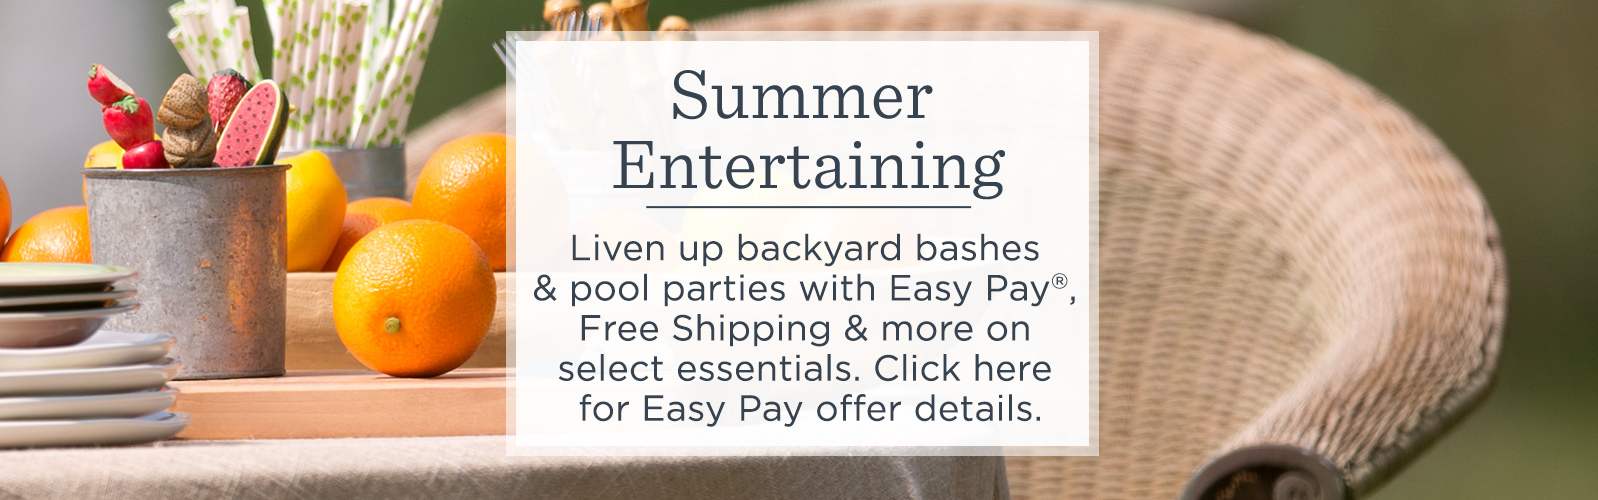 Summer Entertaining. Liven up backyard bashes & pool parties with Easy Pay®, Free Shipping & more on select essentials.  Click here for Easy Pay offer details.